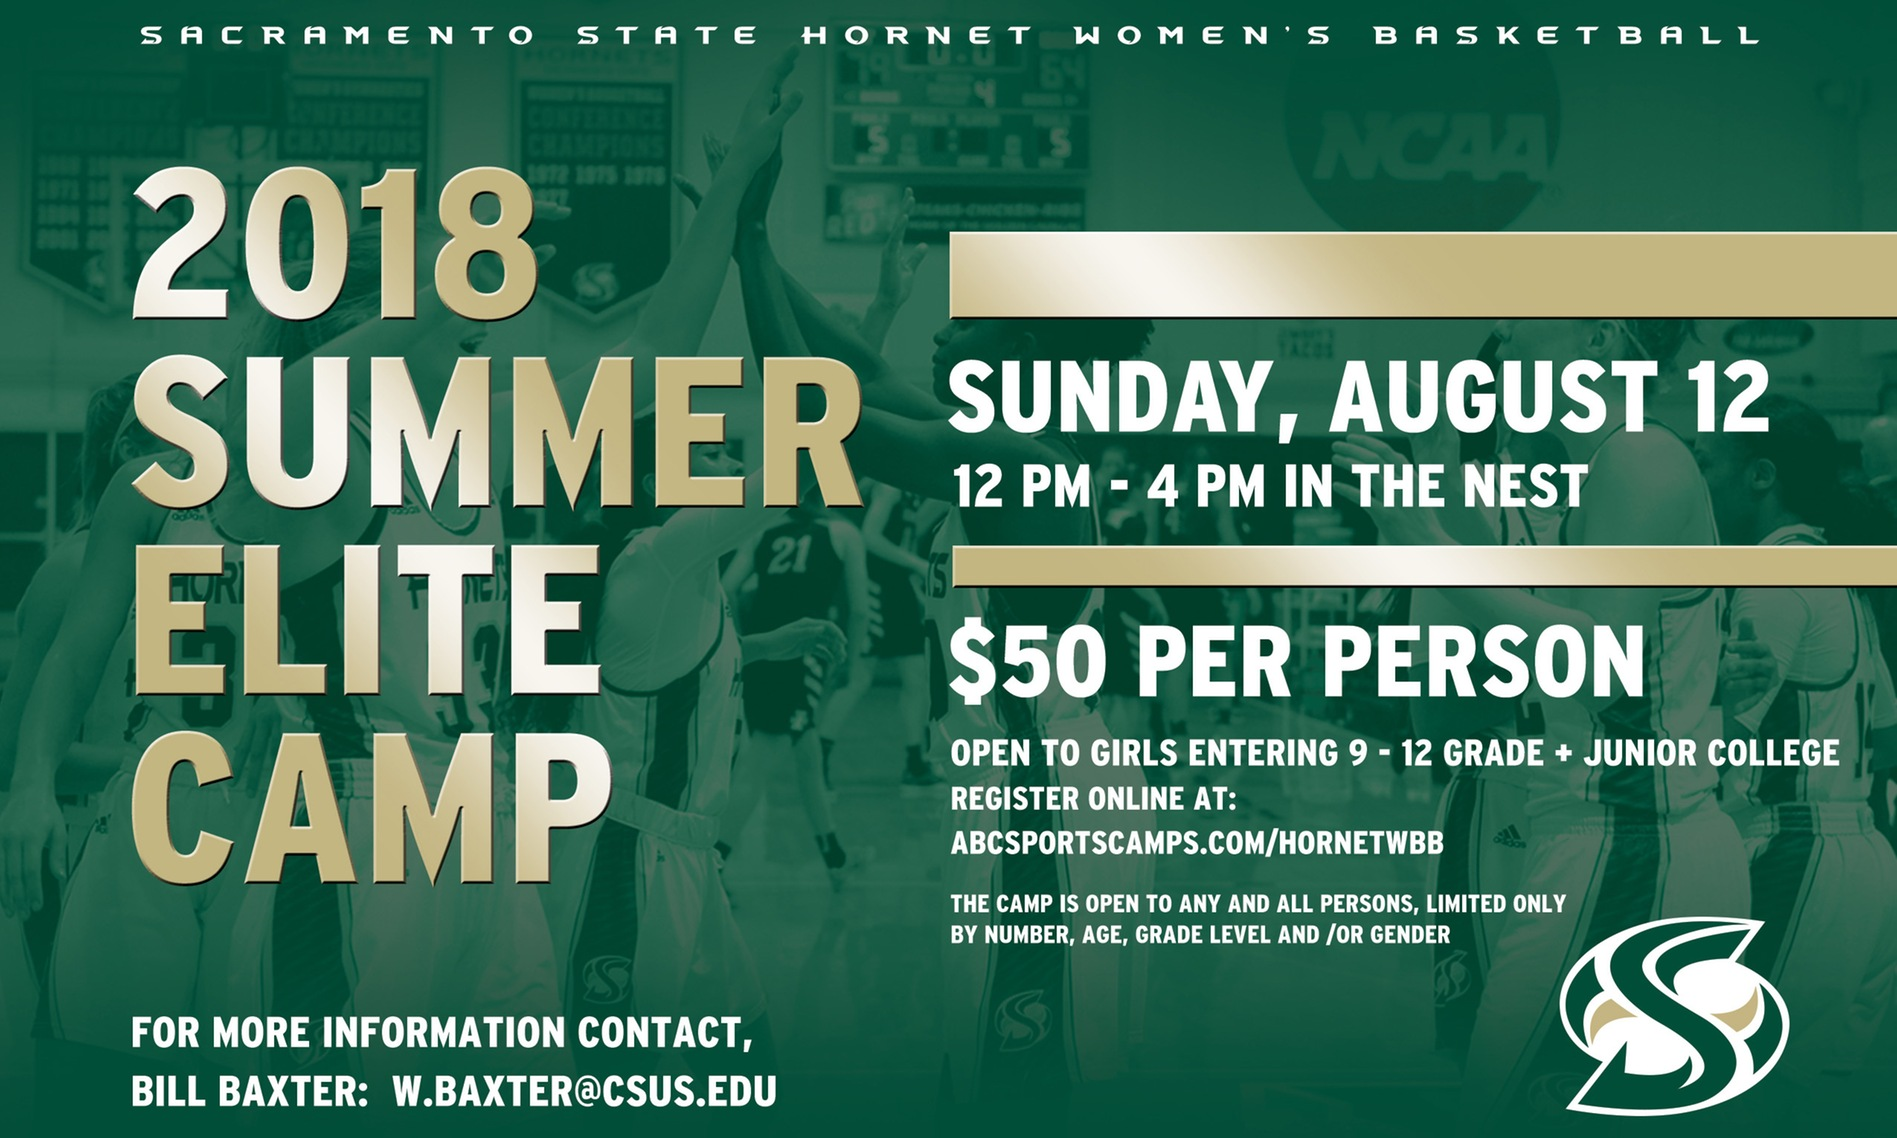 WOMEN'S BASKETBALL HOSTS 2018 ELITE CAMP ON SUNDAY, AUGUST 12